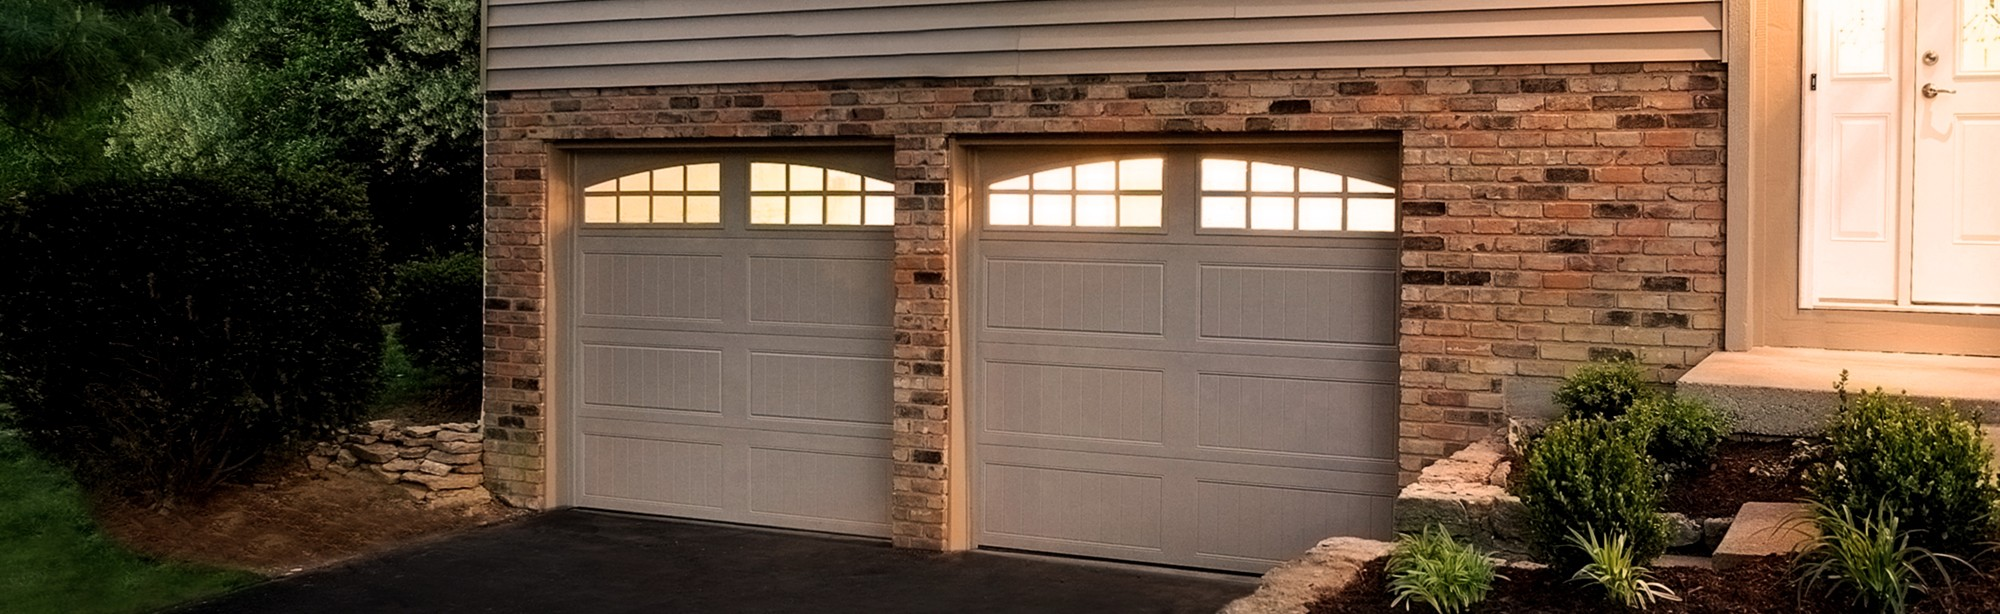 Garage Door Products Amp Services From Ae Door Amp Window Co